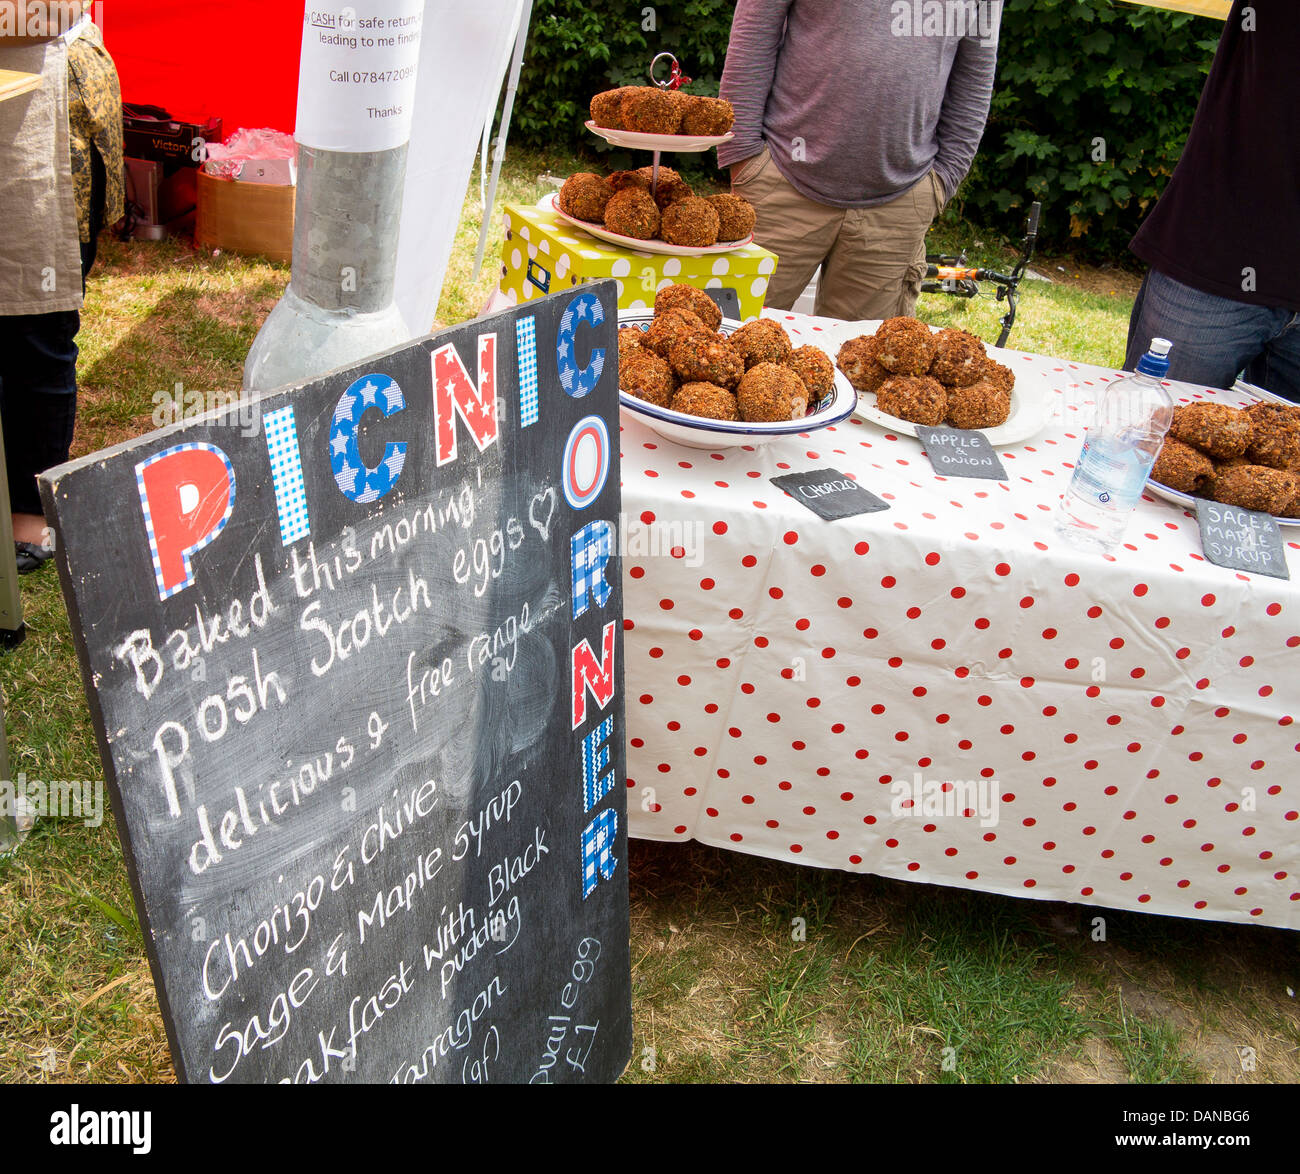 Picnic Diner, selling 'posh scotch eggs' in Brighton street food market - Stock Image